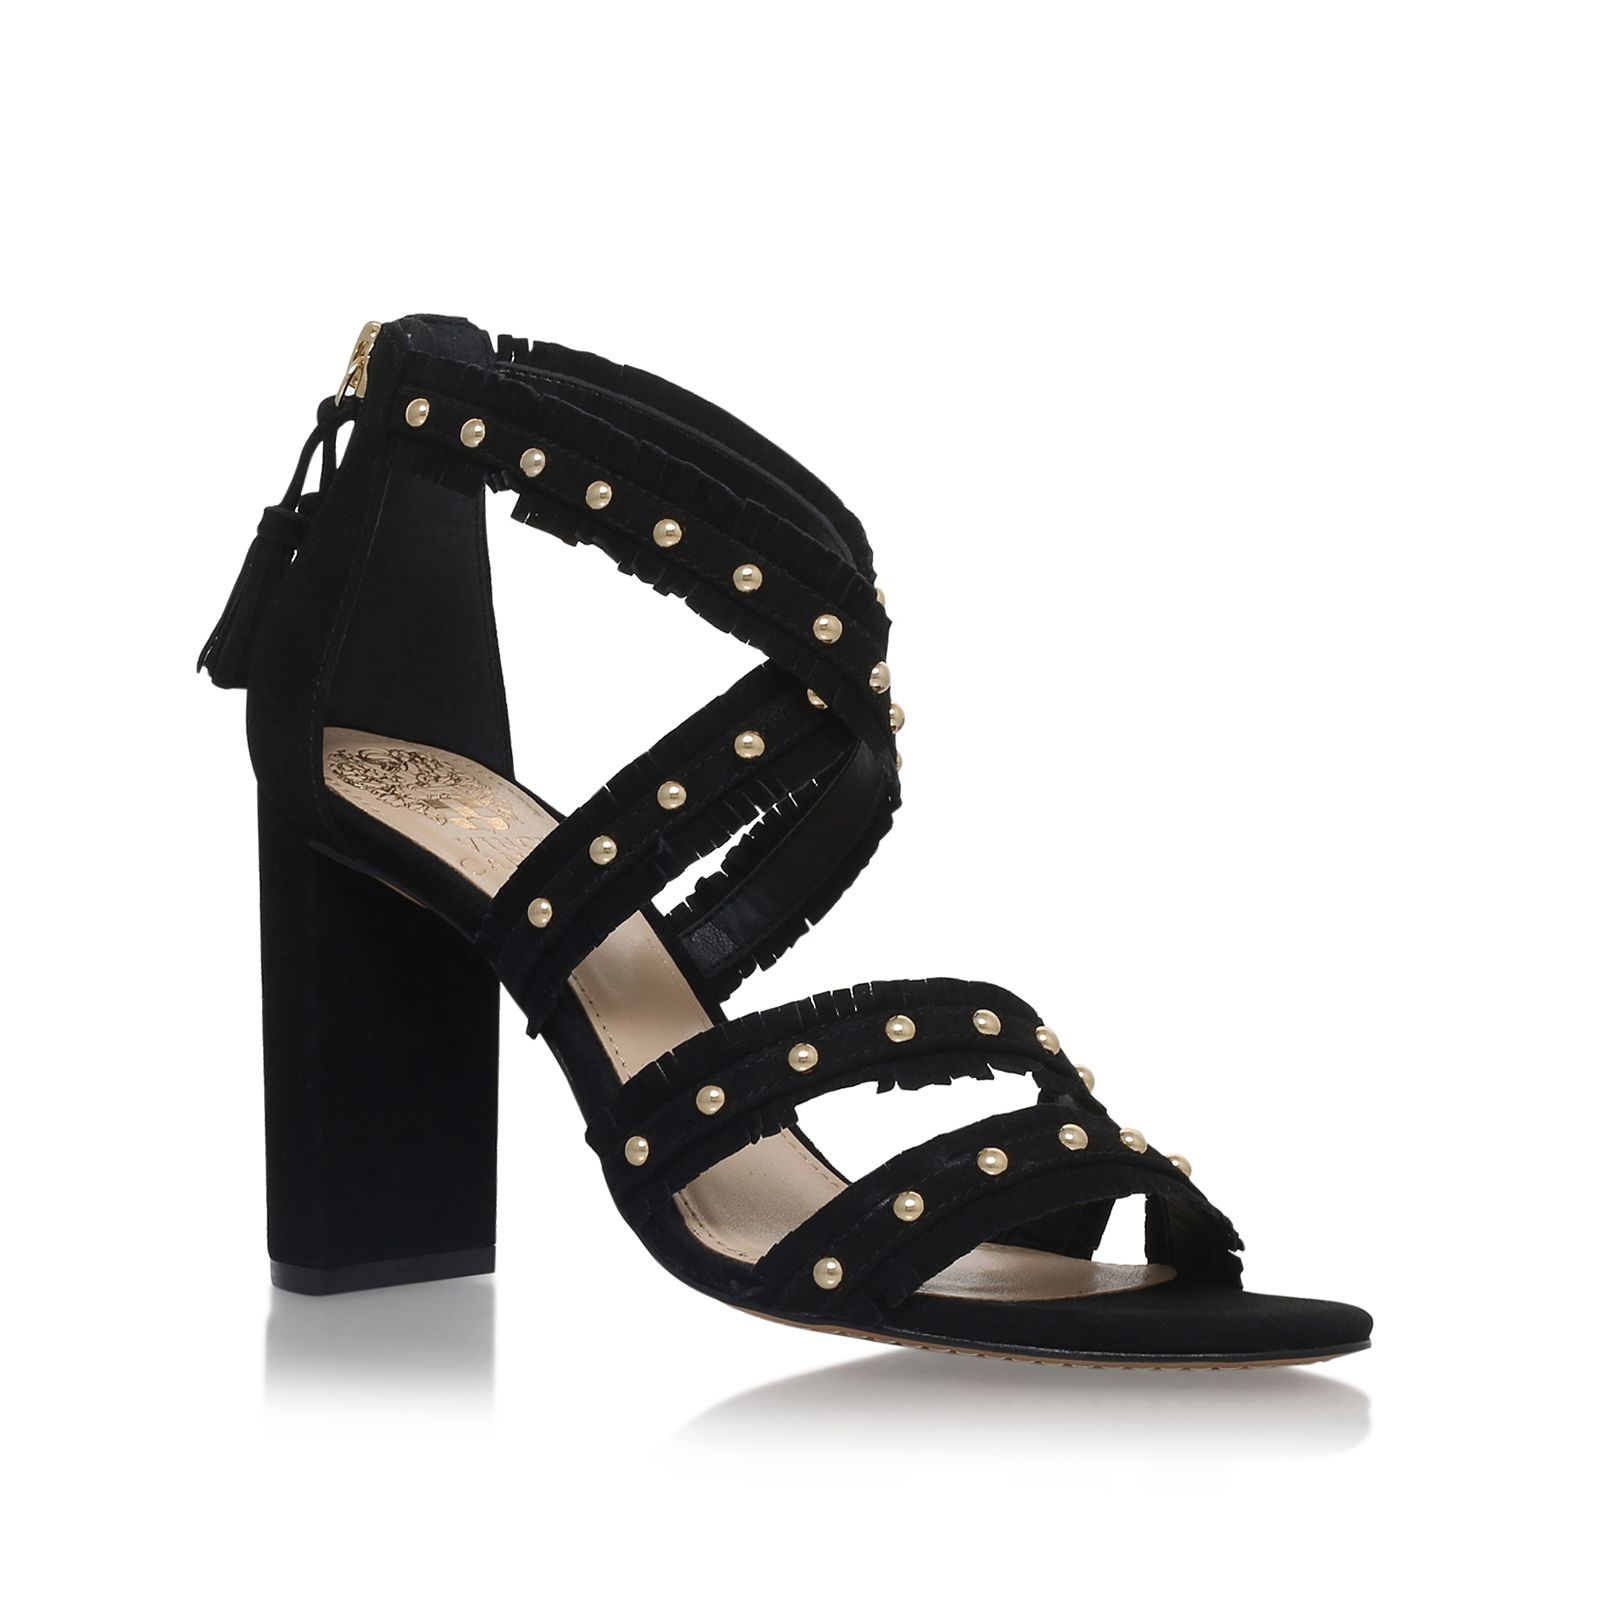 Vince Camuto Machila sandals, Black